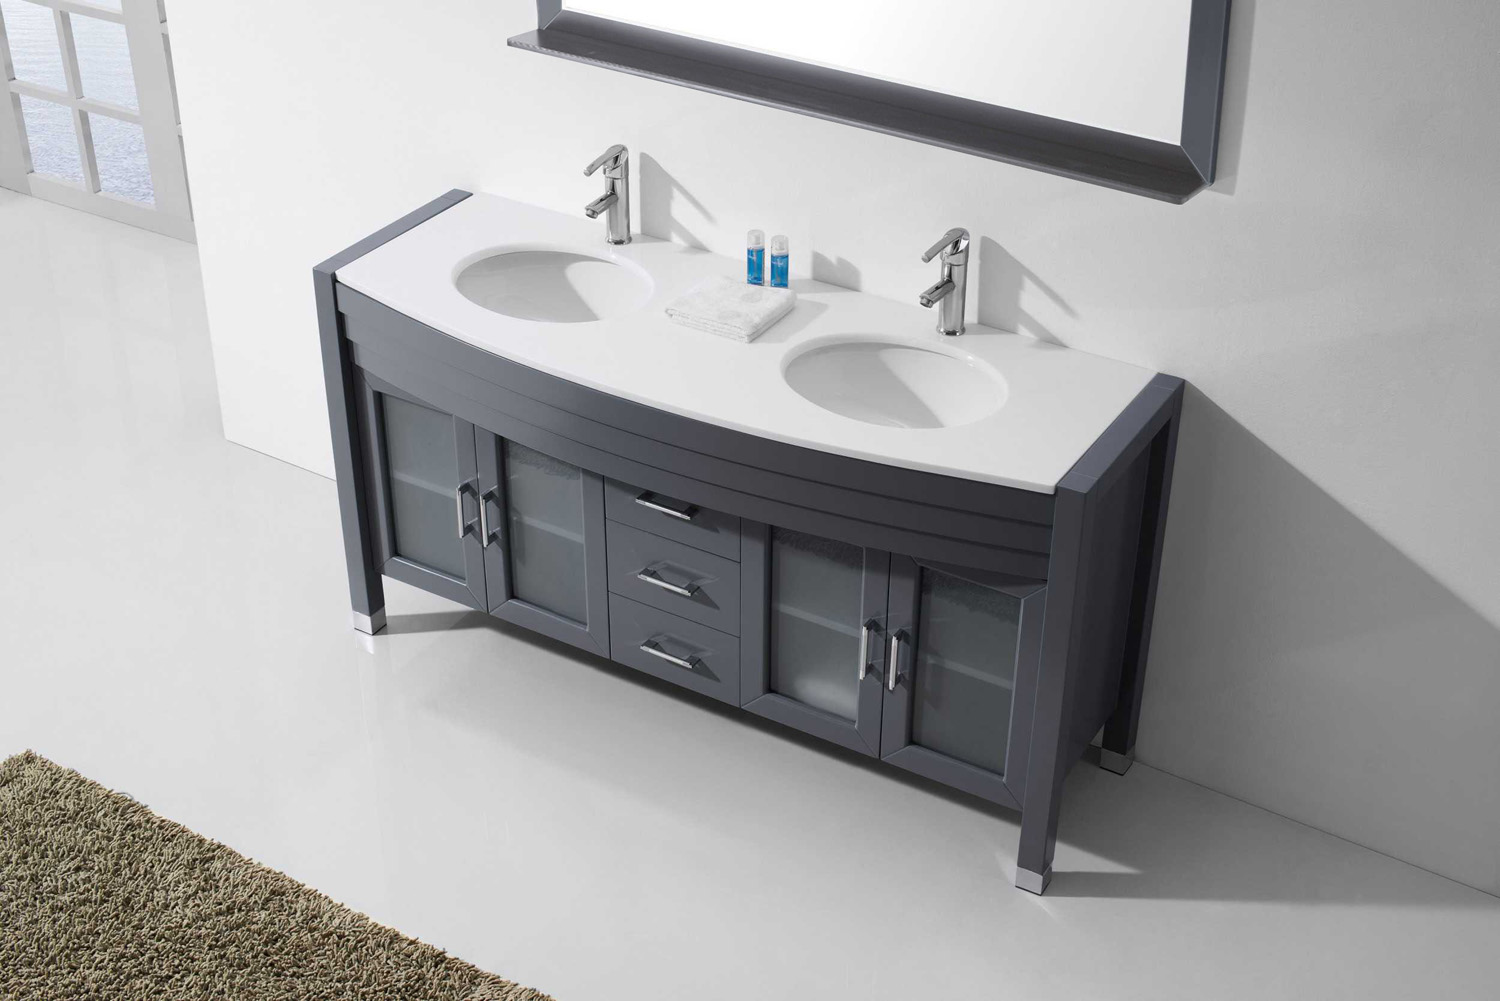 Pros And Cons Of Double Sink Vs Single Sink Vanities Luxury Living